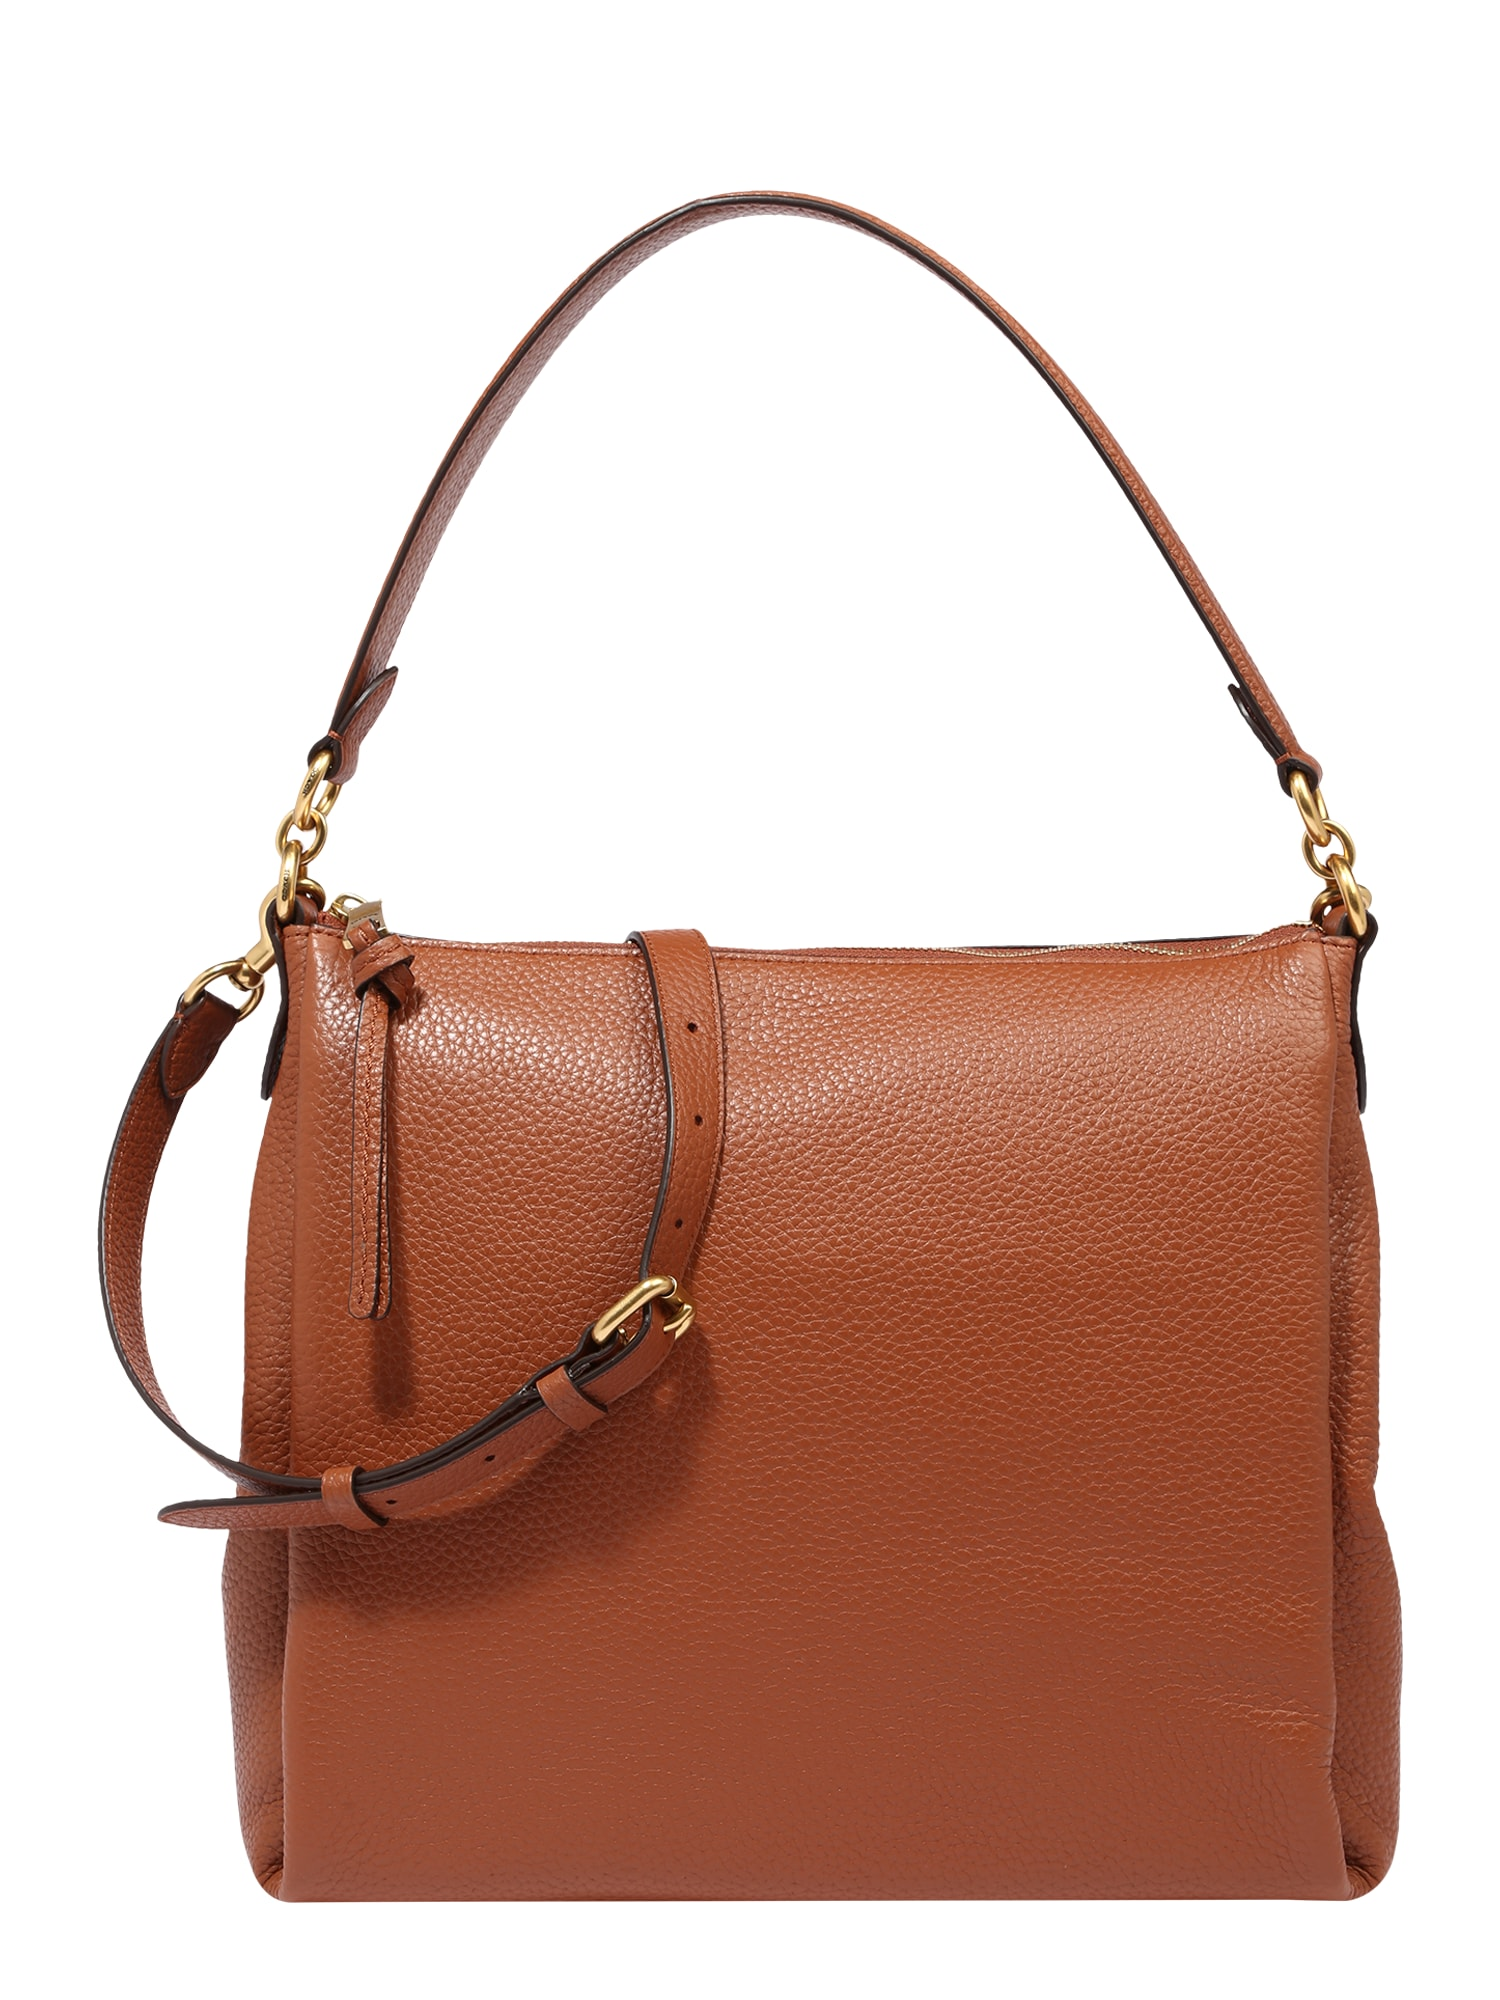 COACH Kabelka leather shay shoulder bag hnědá Coach